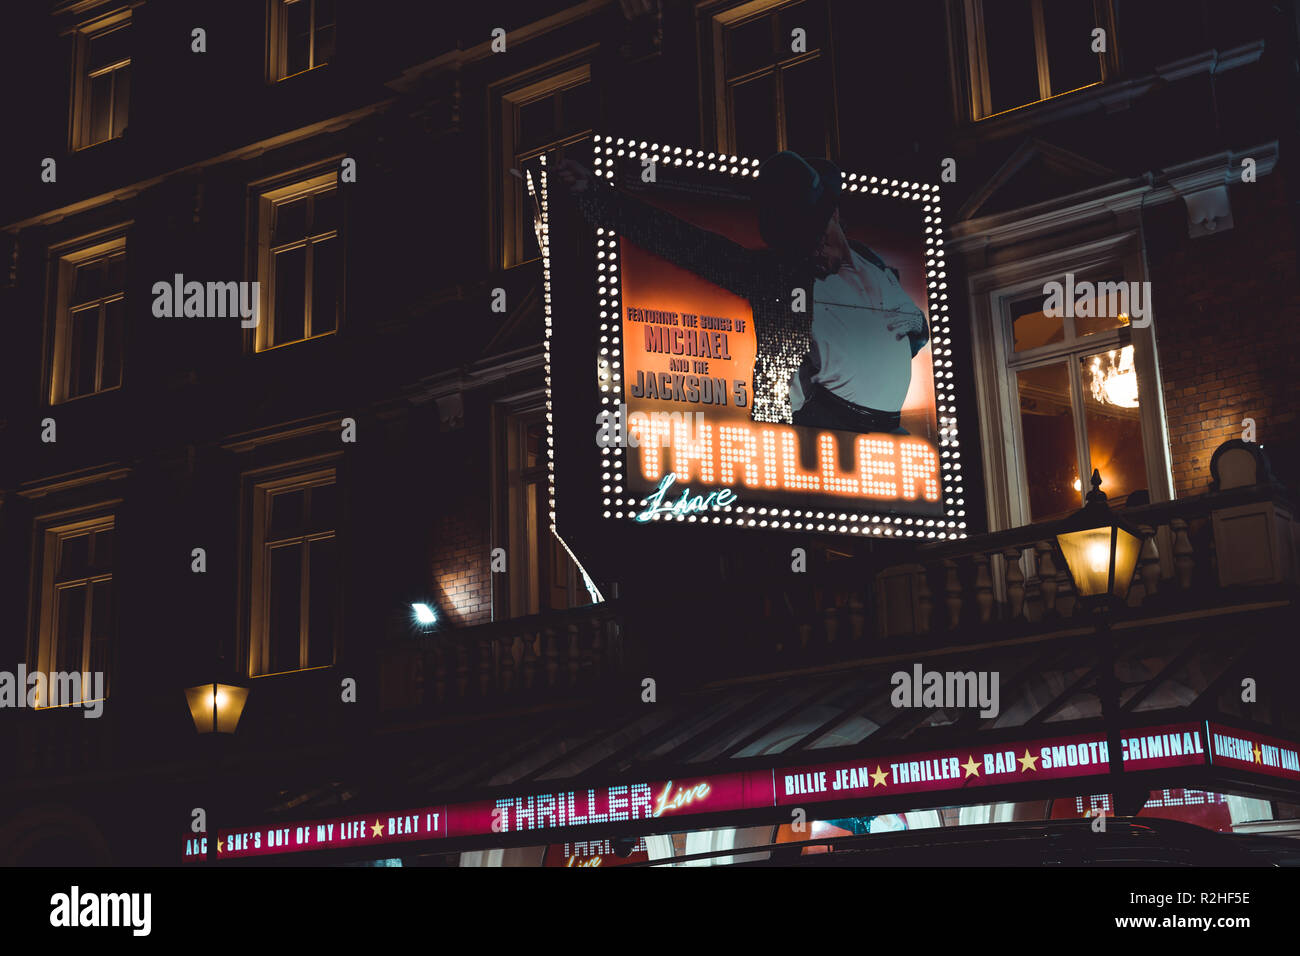 LONDON - NOVEMBER 14, 2018: Theatre at night on Shaftesbury Avenue in West End London - Stock Image